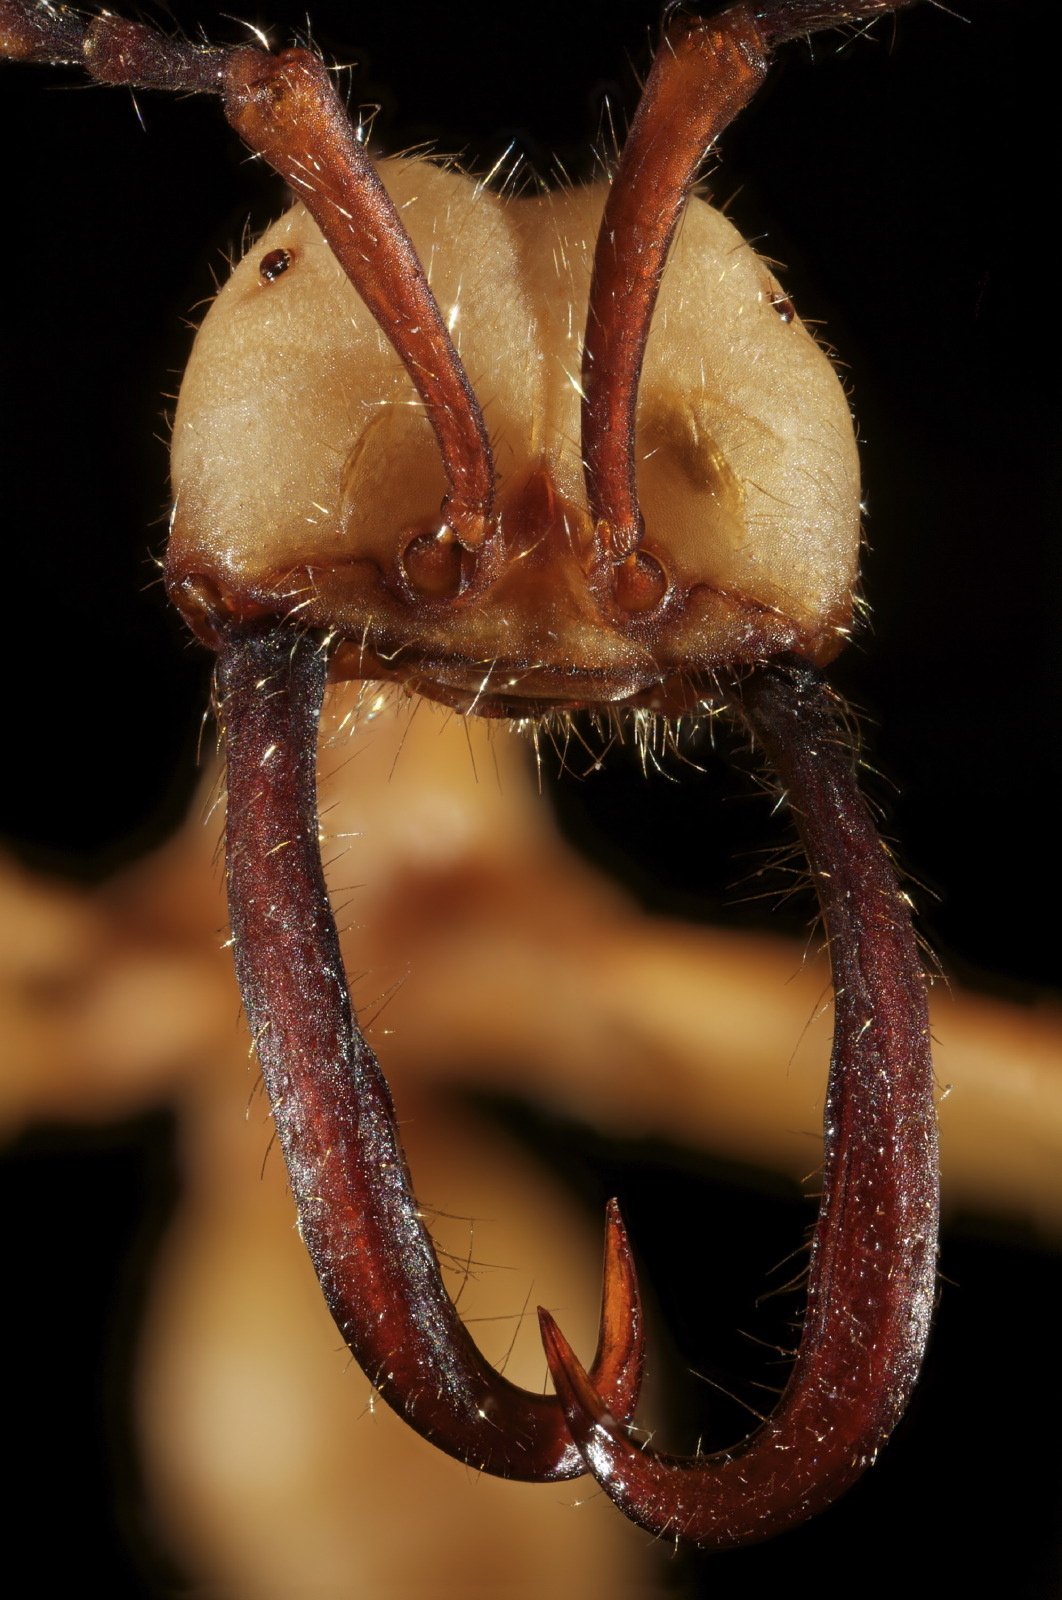 Eciton ant portrait frontal